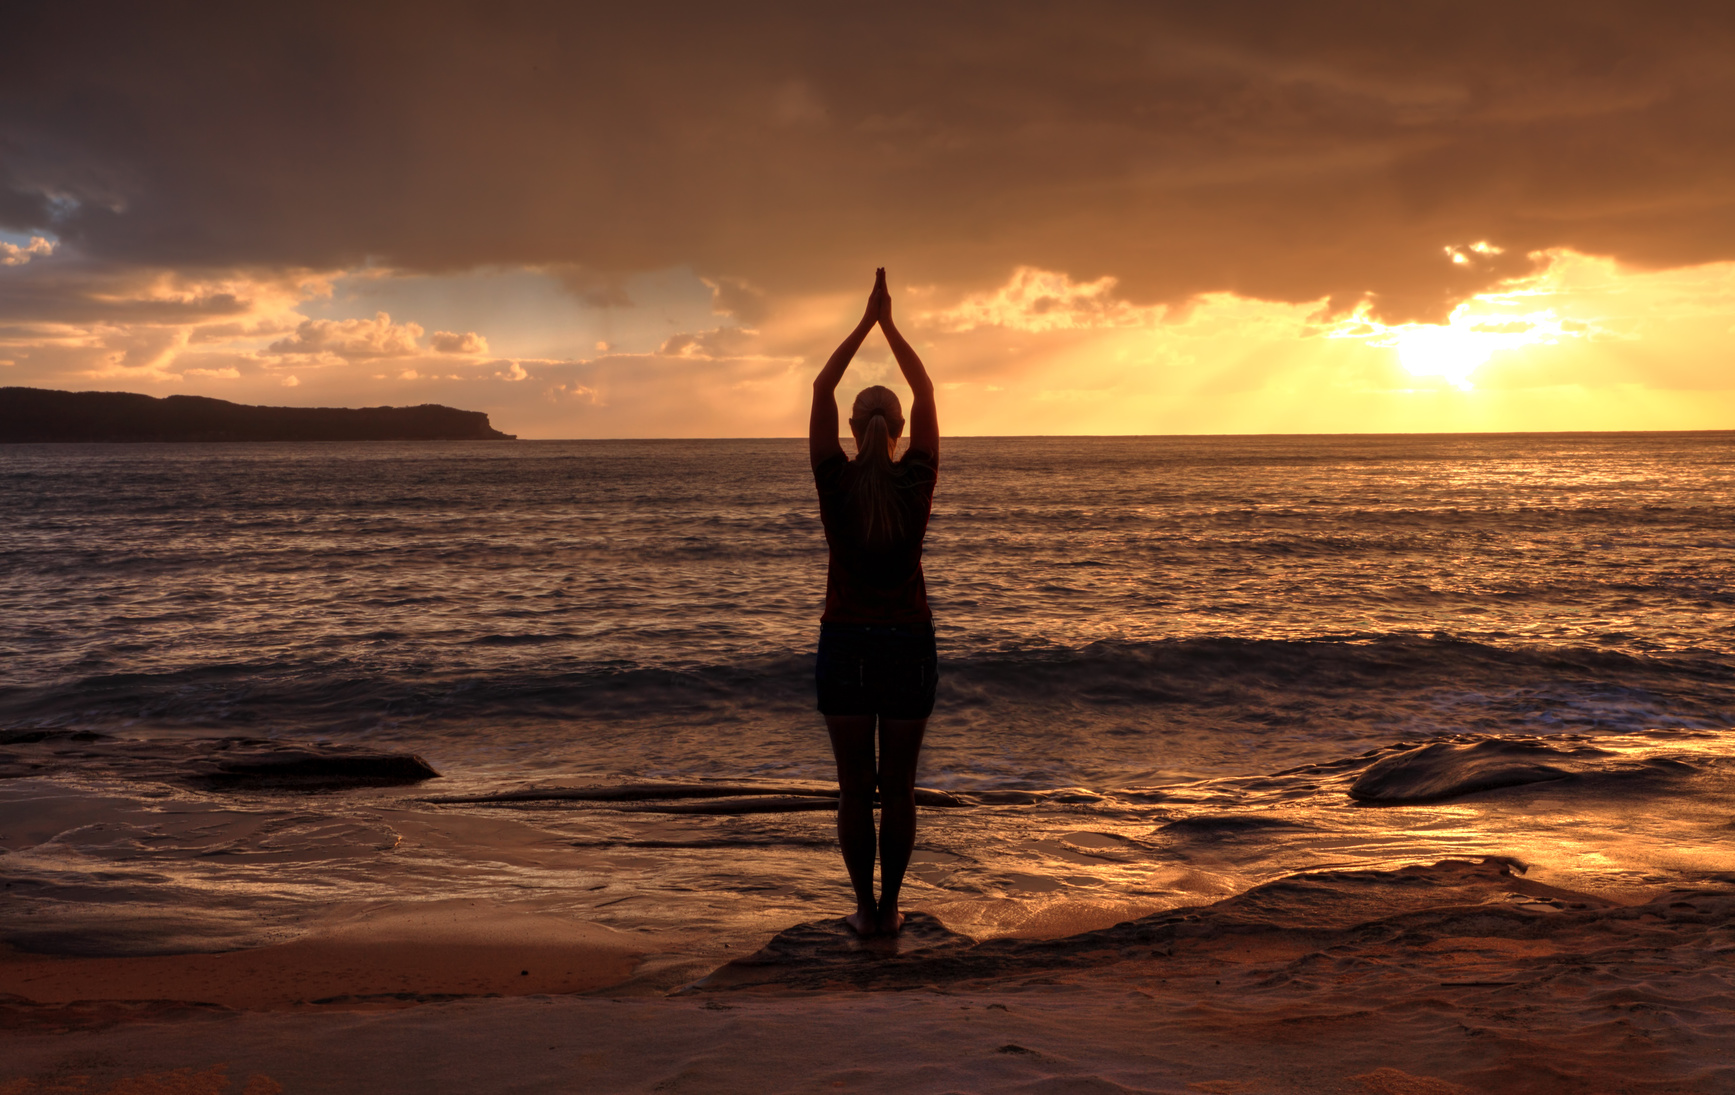 Female relaxing at sunrise, performing tadasana - mountain pose by the sea at sunrise